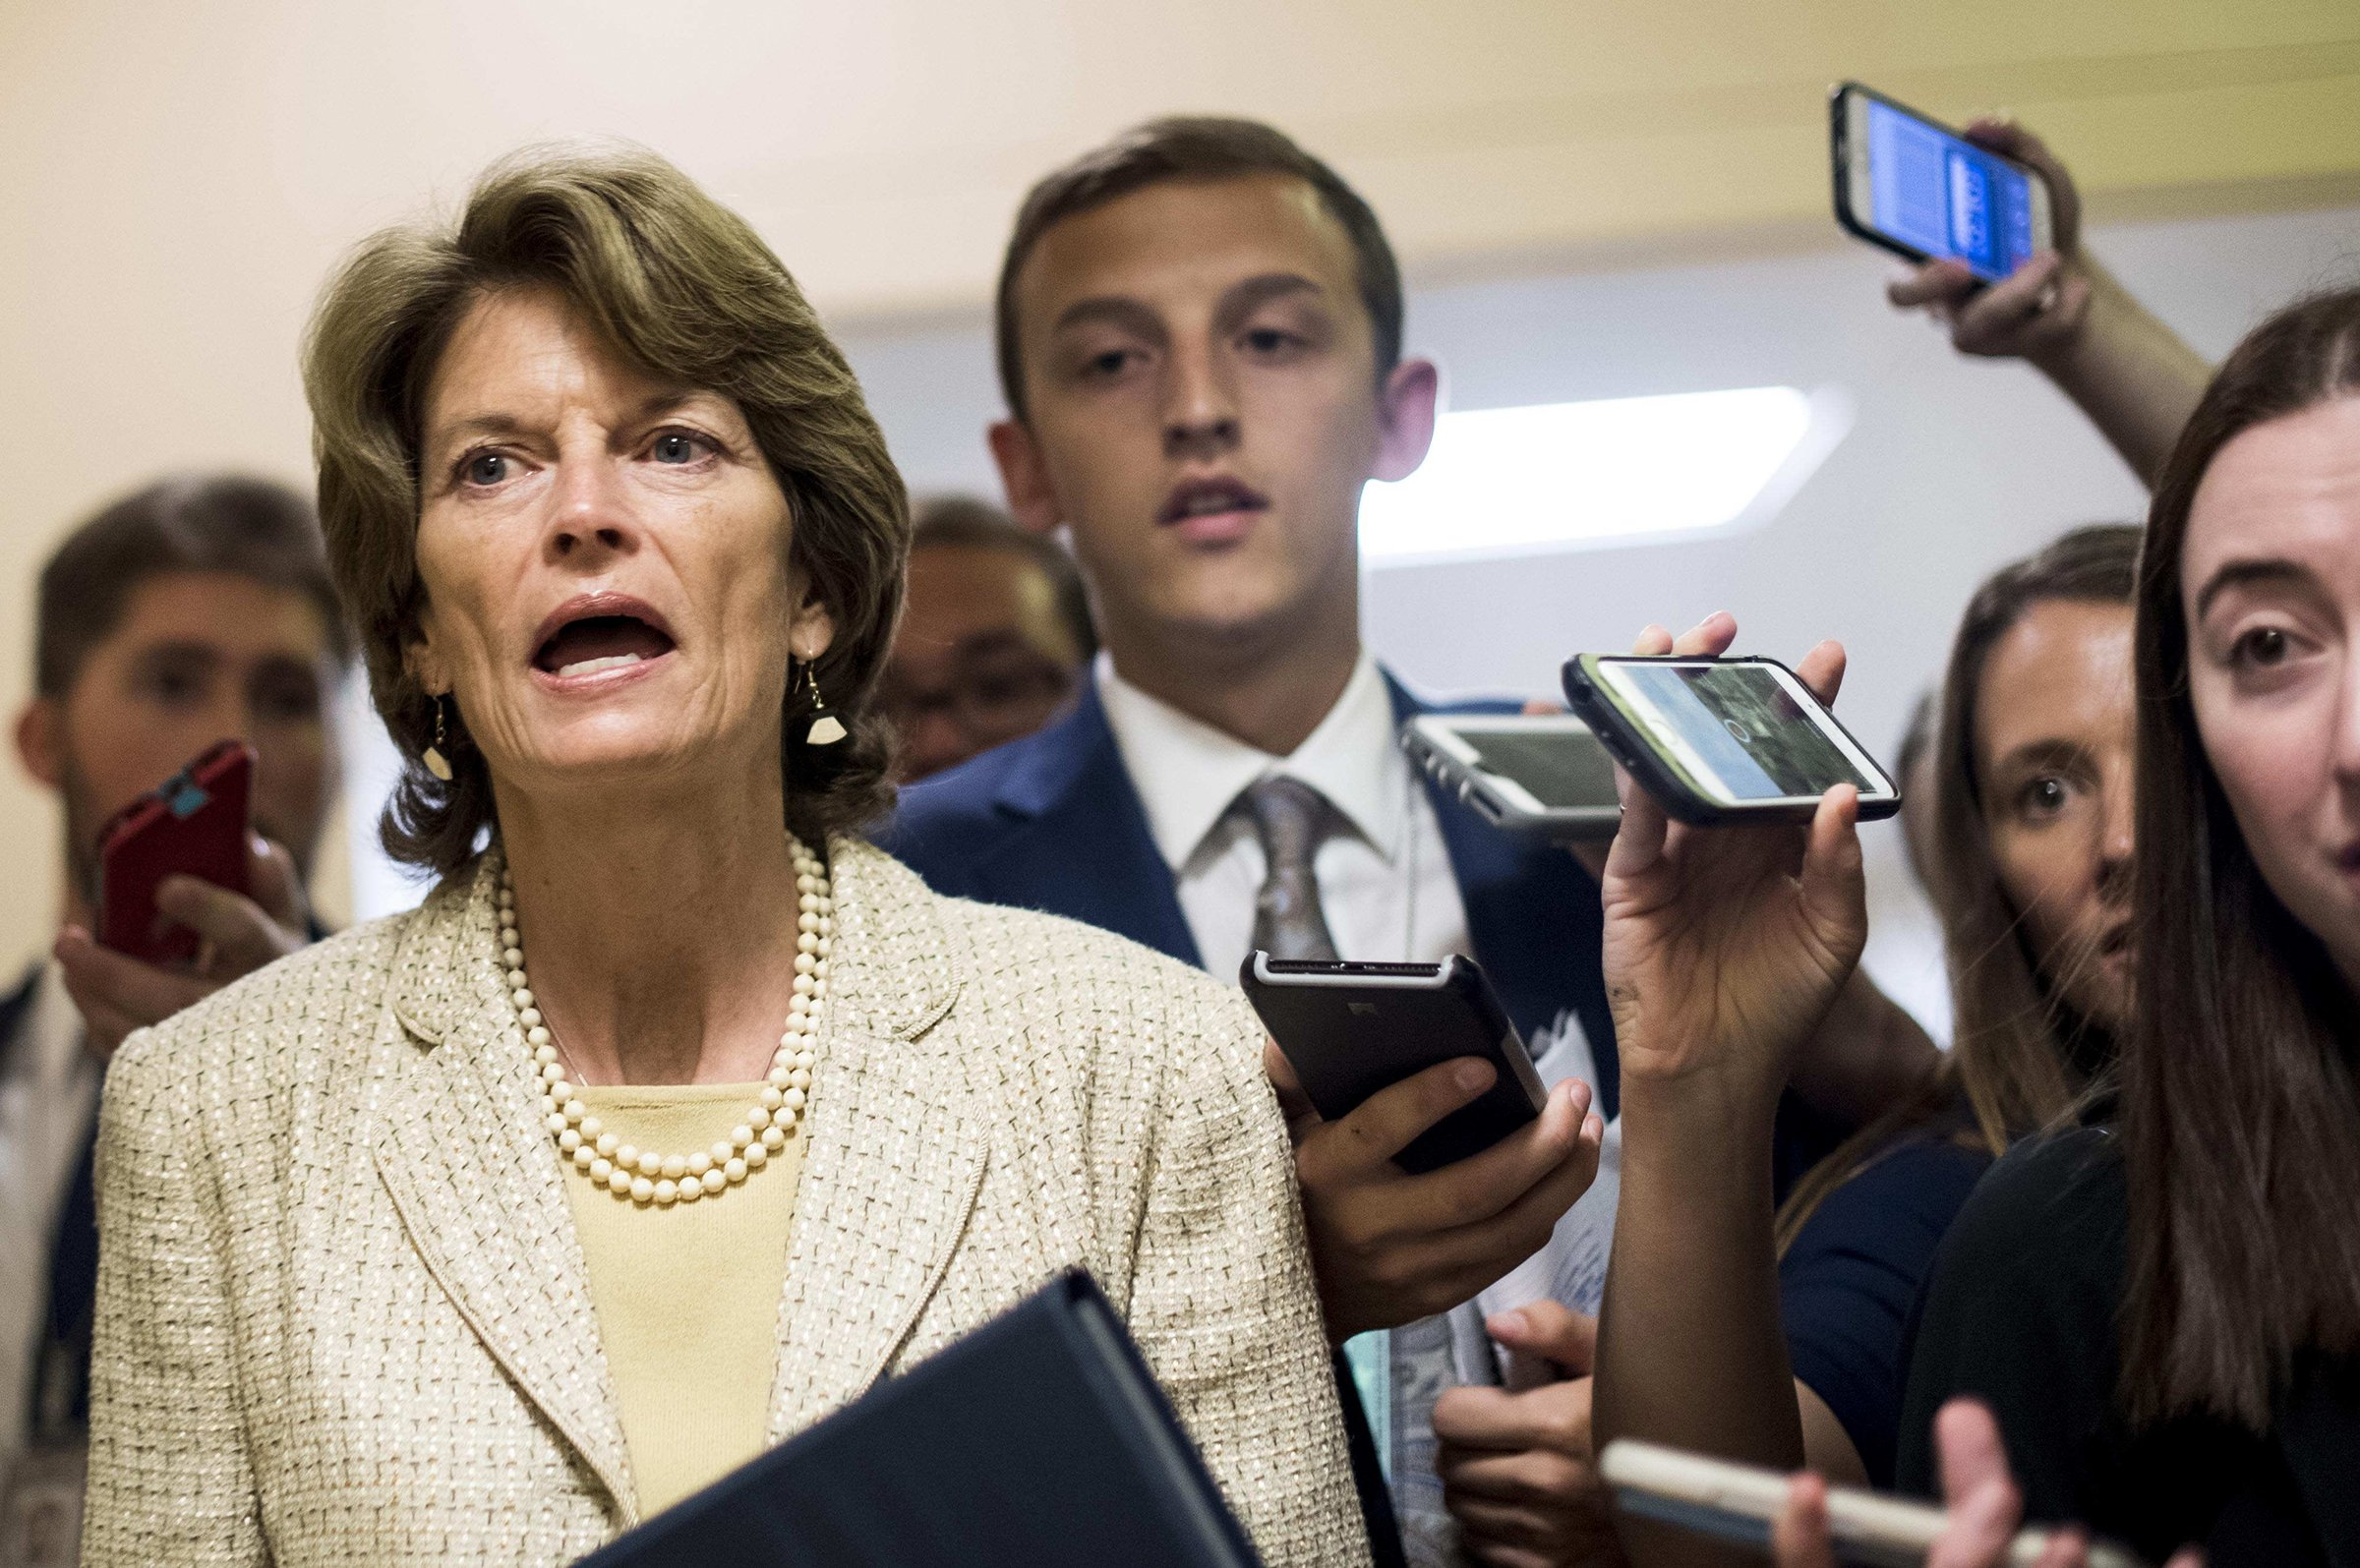 Murkowski dismisses concerns about Alaska energy repercussions after Trump threat